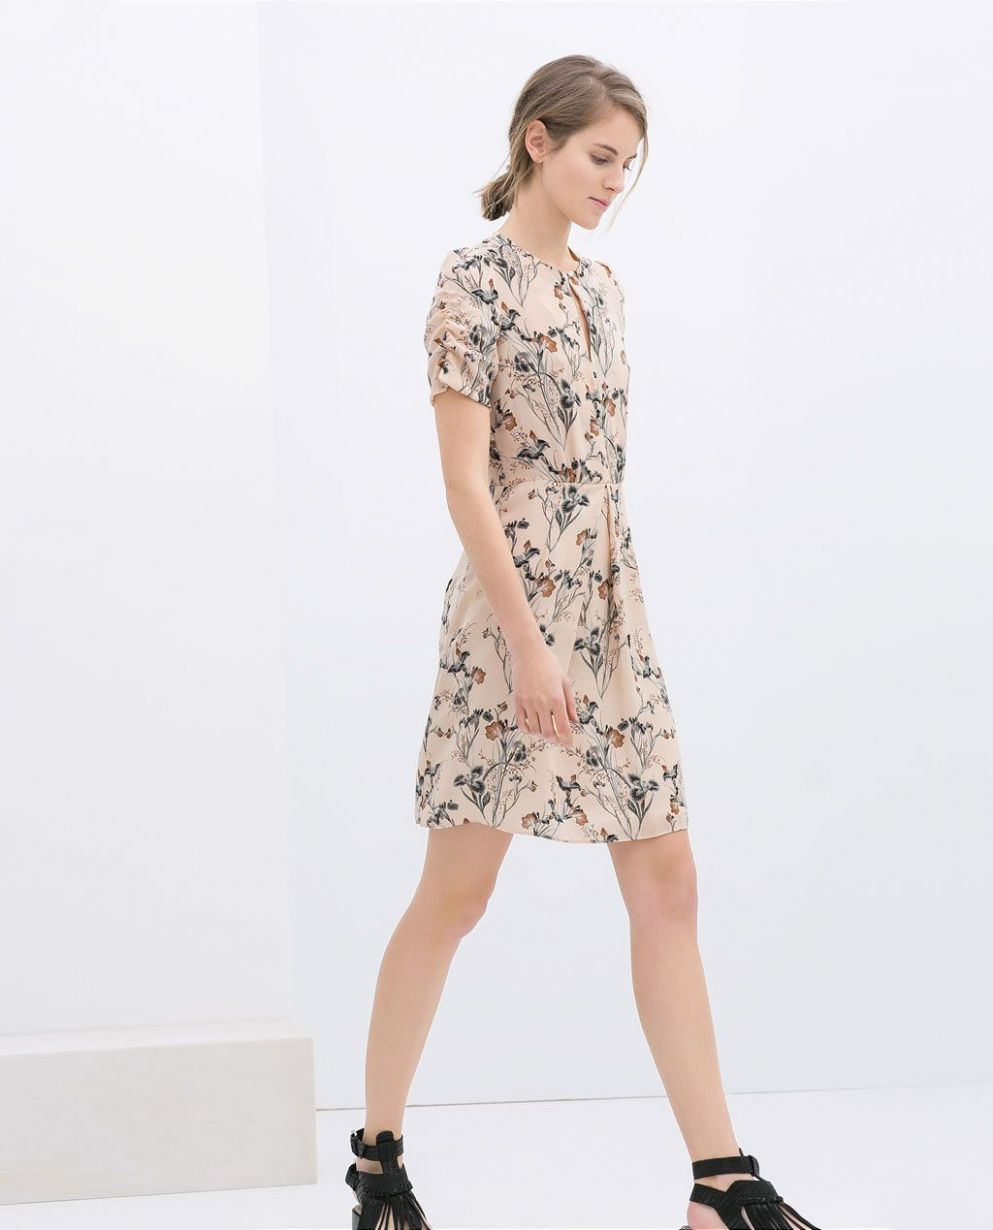 ZARA - NEW THIS WEEK - PRINTED DRESS | Clothes Before Hoes ..